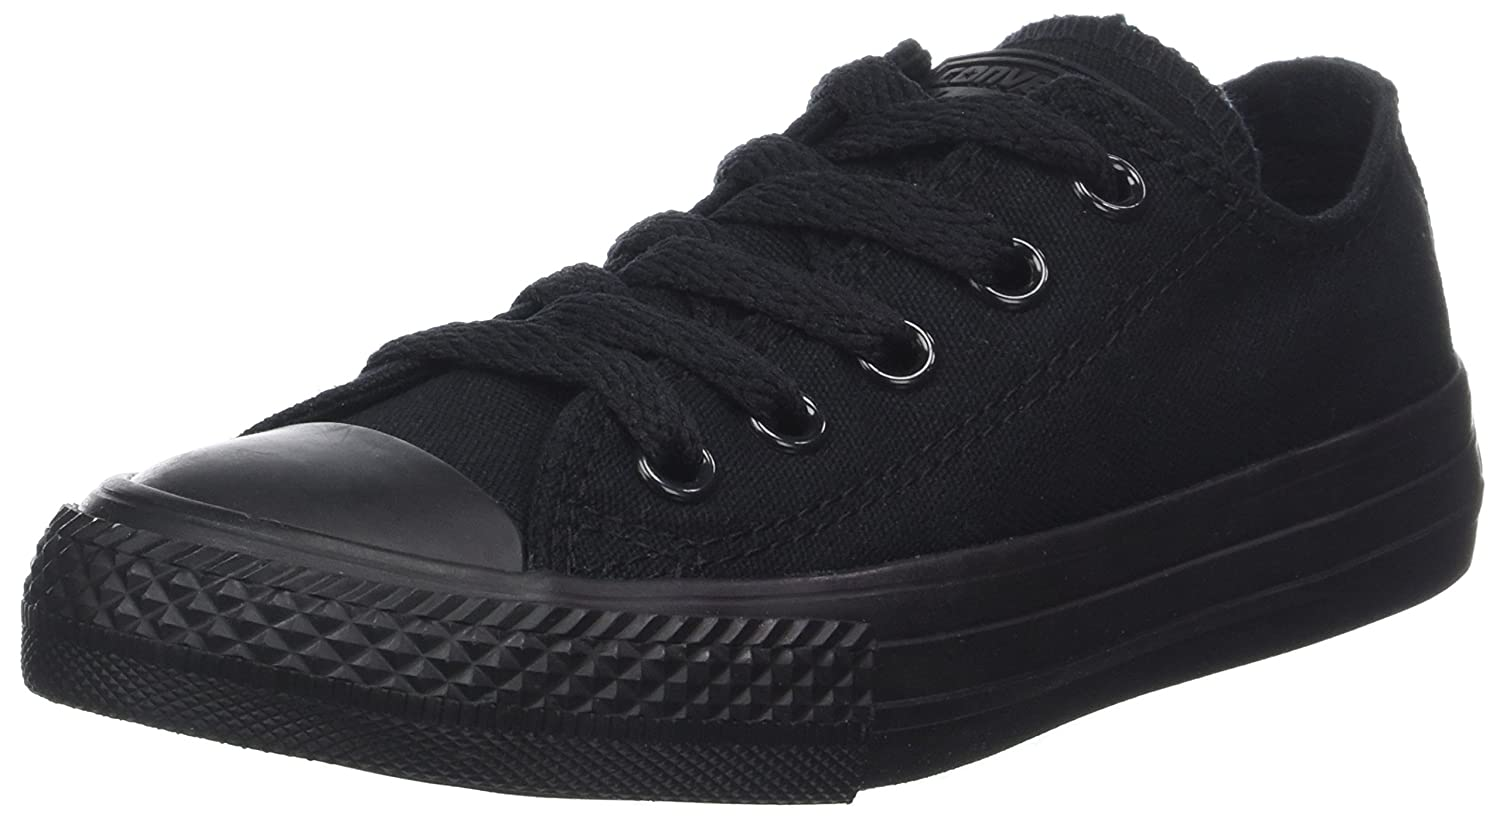 8b9ea35fd1f Amazon.com  Converse Chuck Taylor All Star Mono Ox Infant Kids Trainer  Black  Shoes